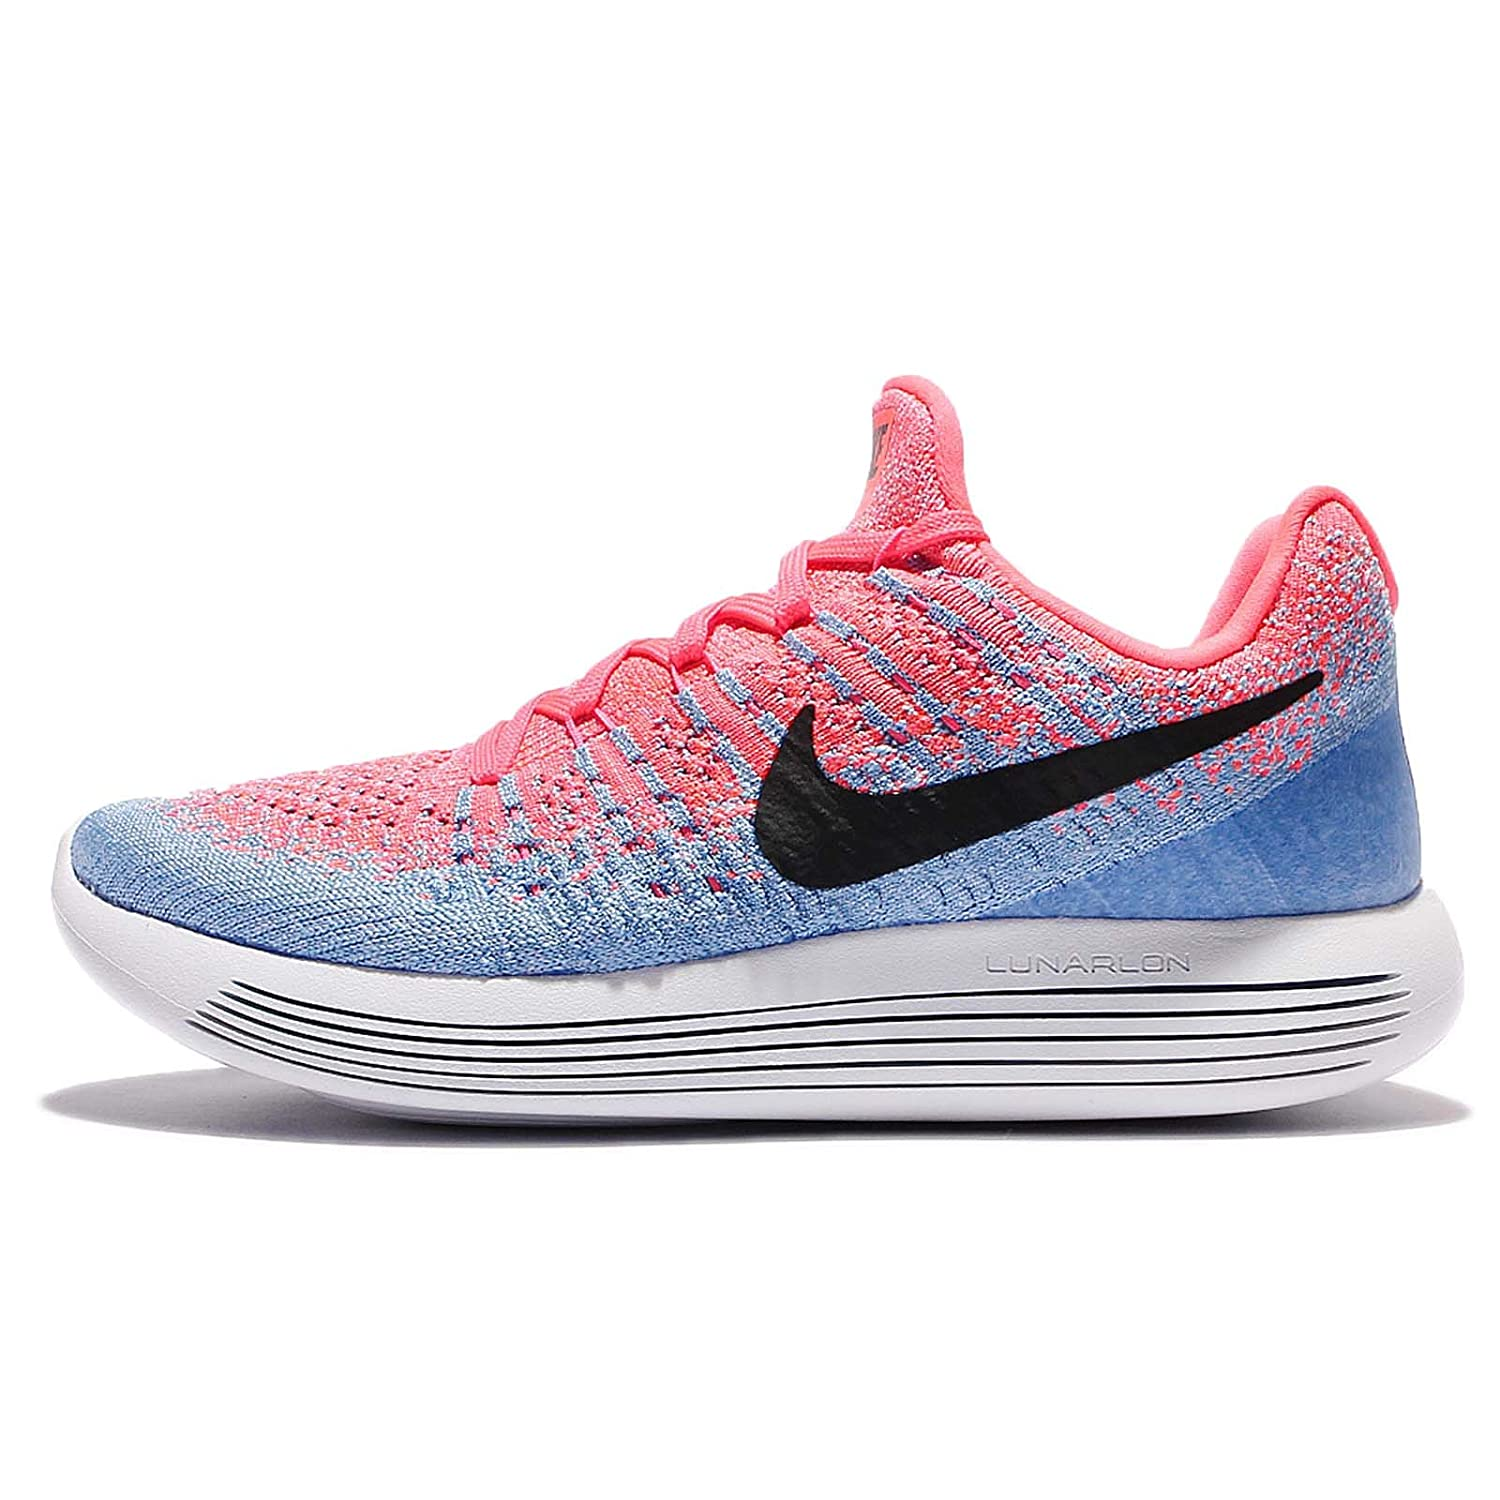 2990f2dc23af Nike Women Lunarepic Low Flyknit 2 Running hot Punch Black-Aluminum-University  Blue Size 6. 0 US  Buy Online at Low Prices in India - Amazon.in